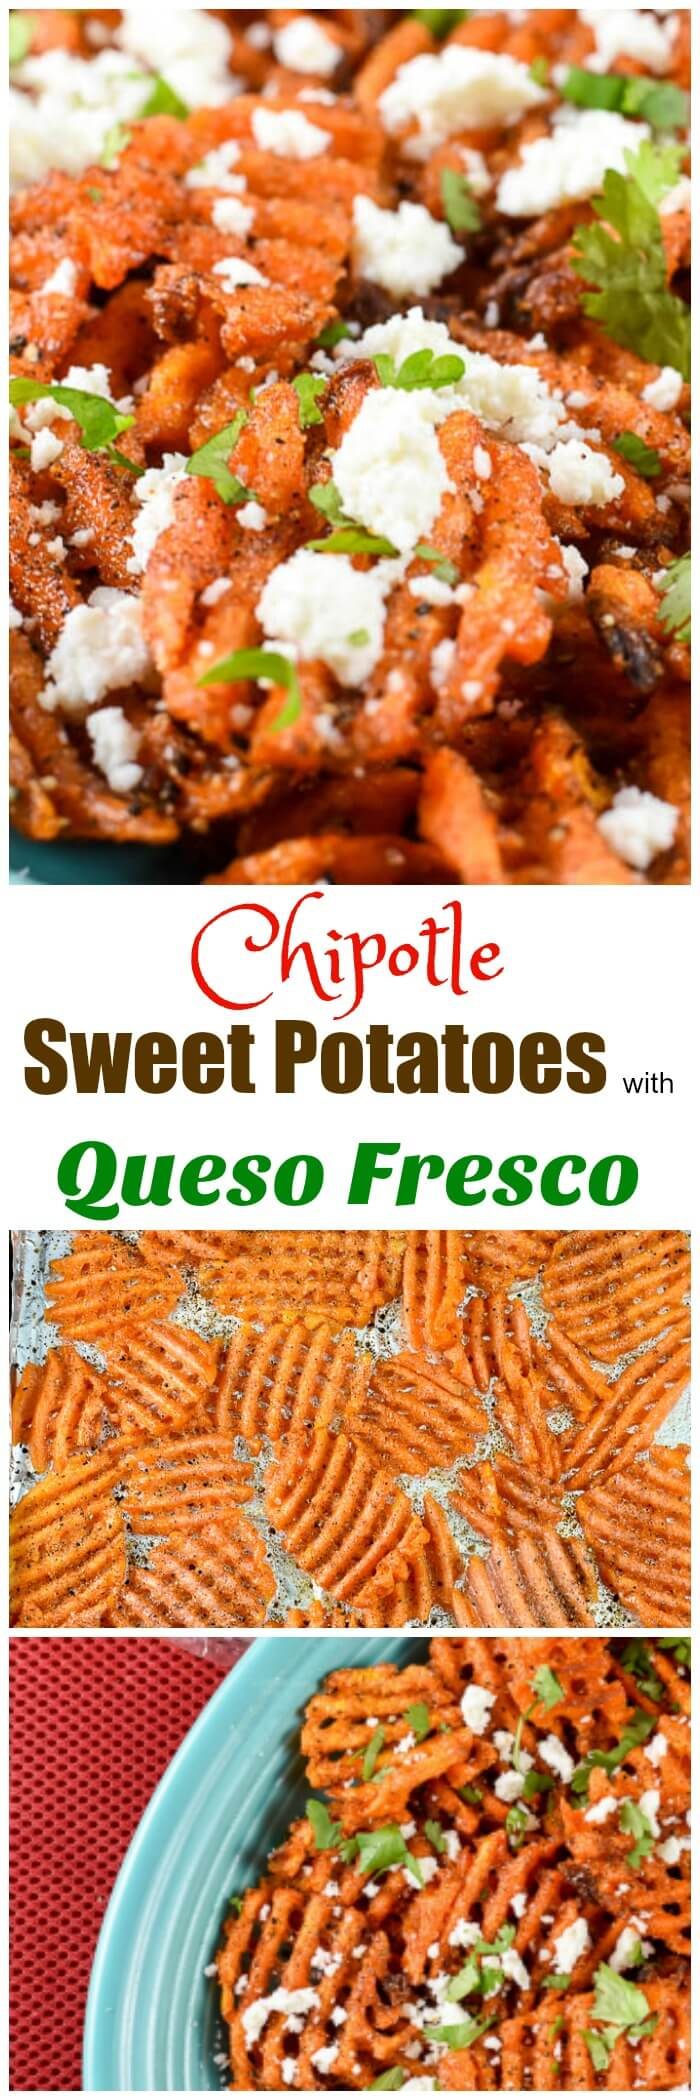 Chipotle Sweet Potatoes with Queso Fresco - Flavor Mosaic